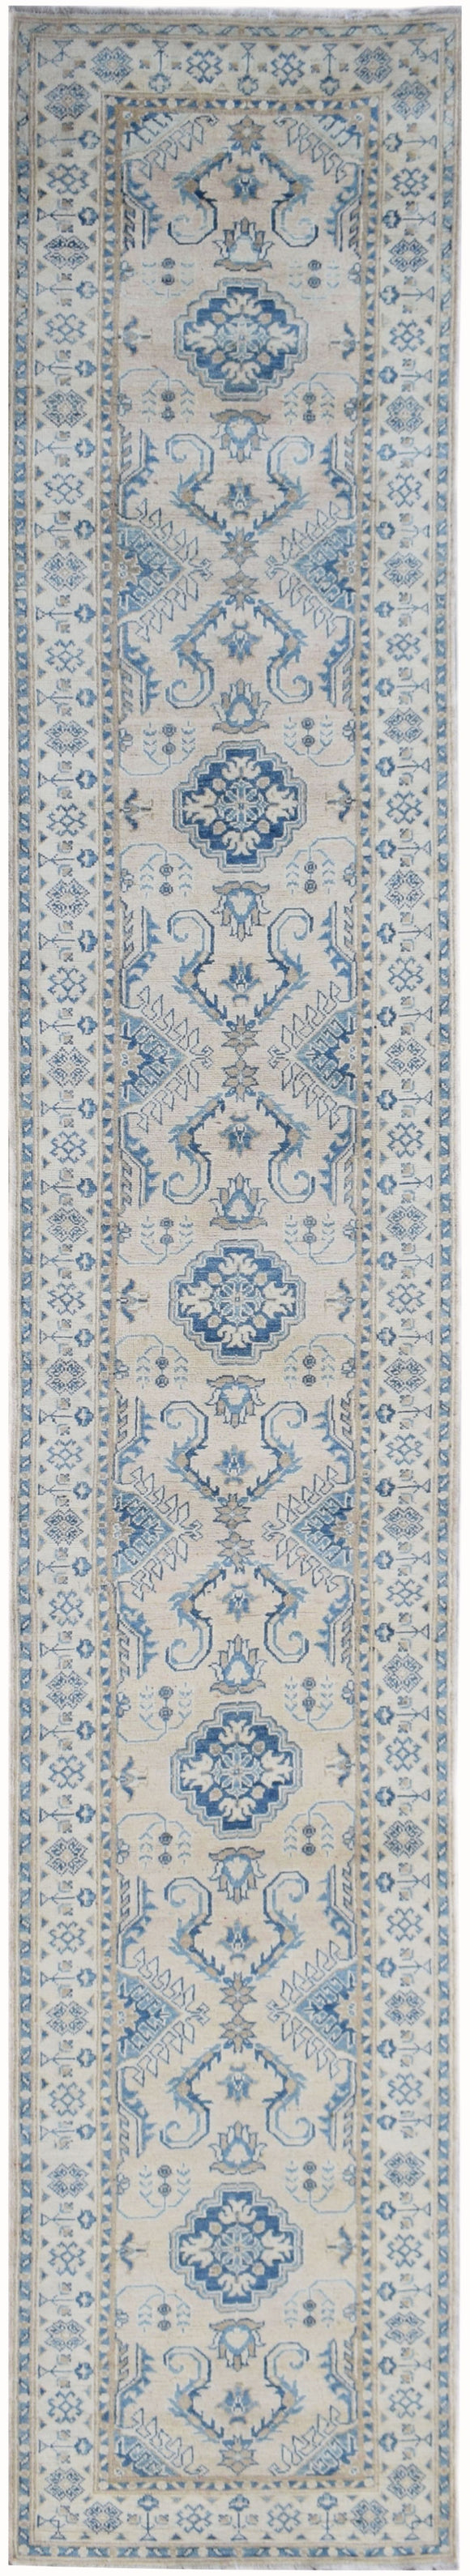 Handmade Sultan Collection Hallway Runner | 454 x 77 cm | 14'4